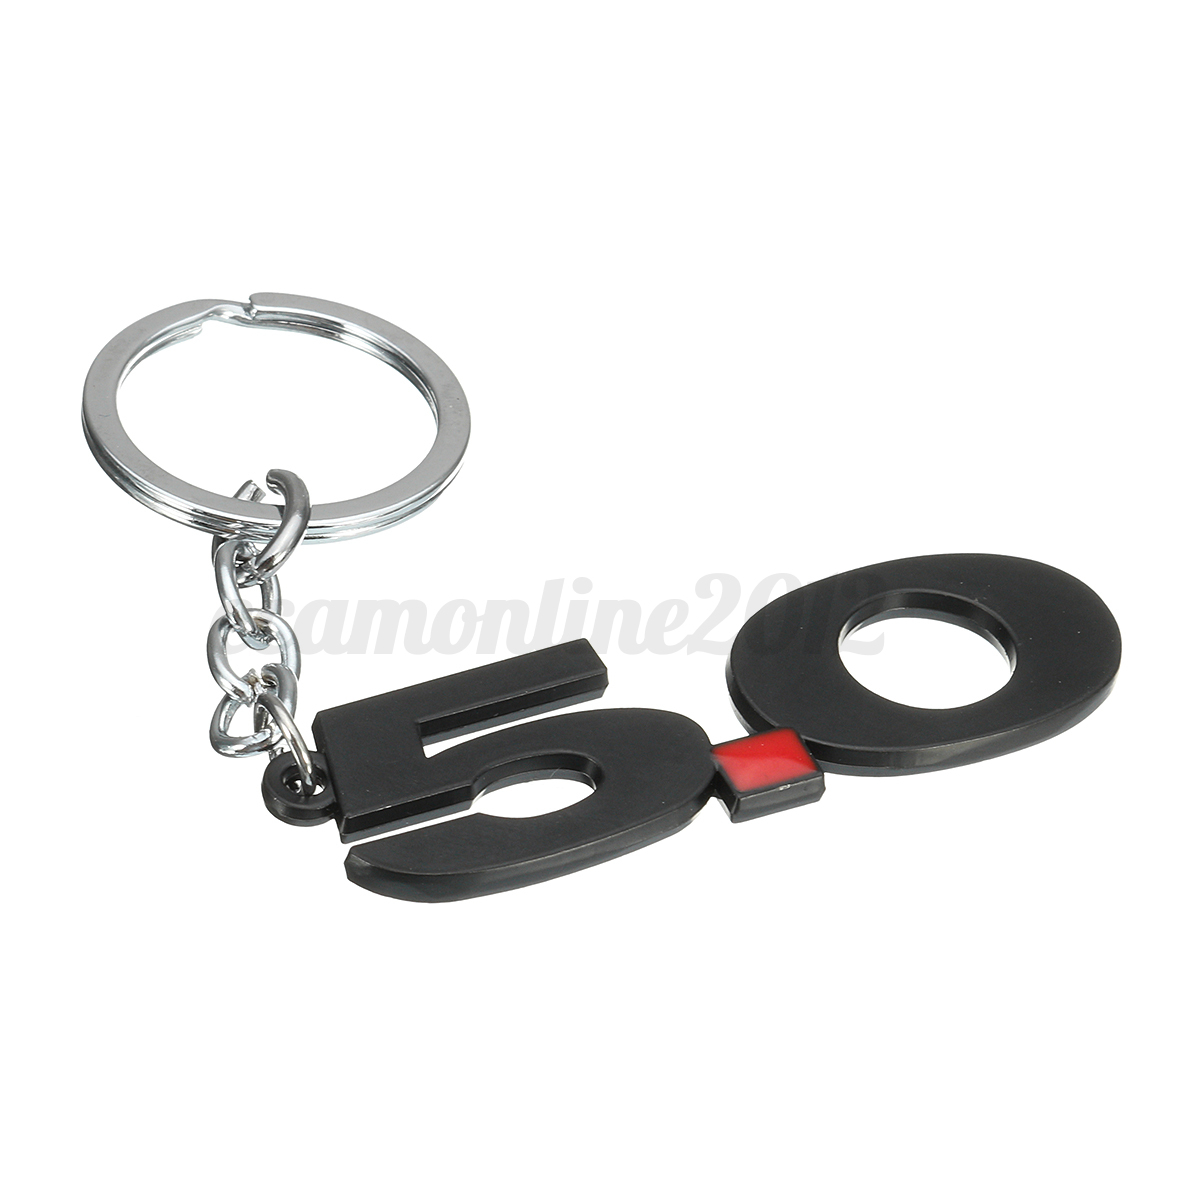 how to find key fob number